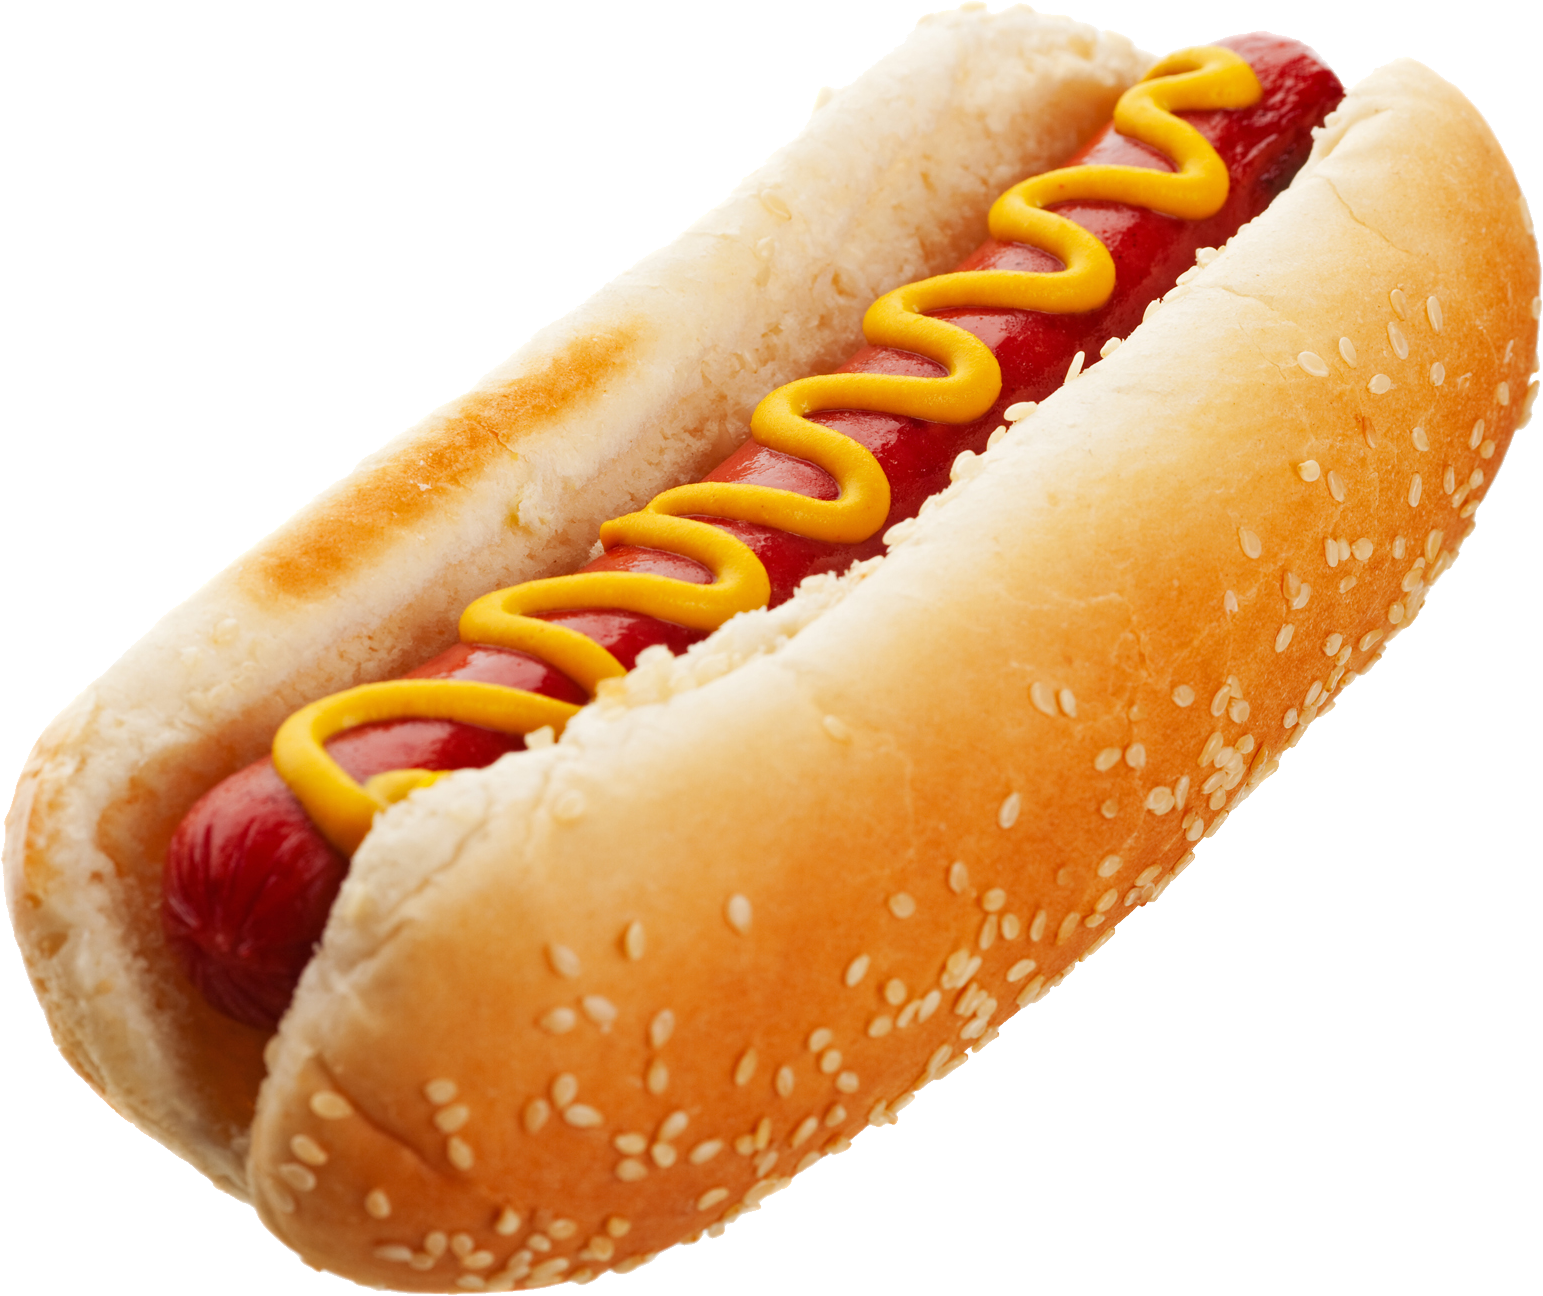 Can Hot Dogs